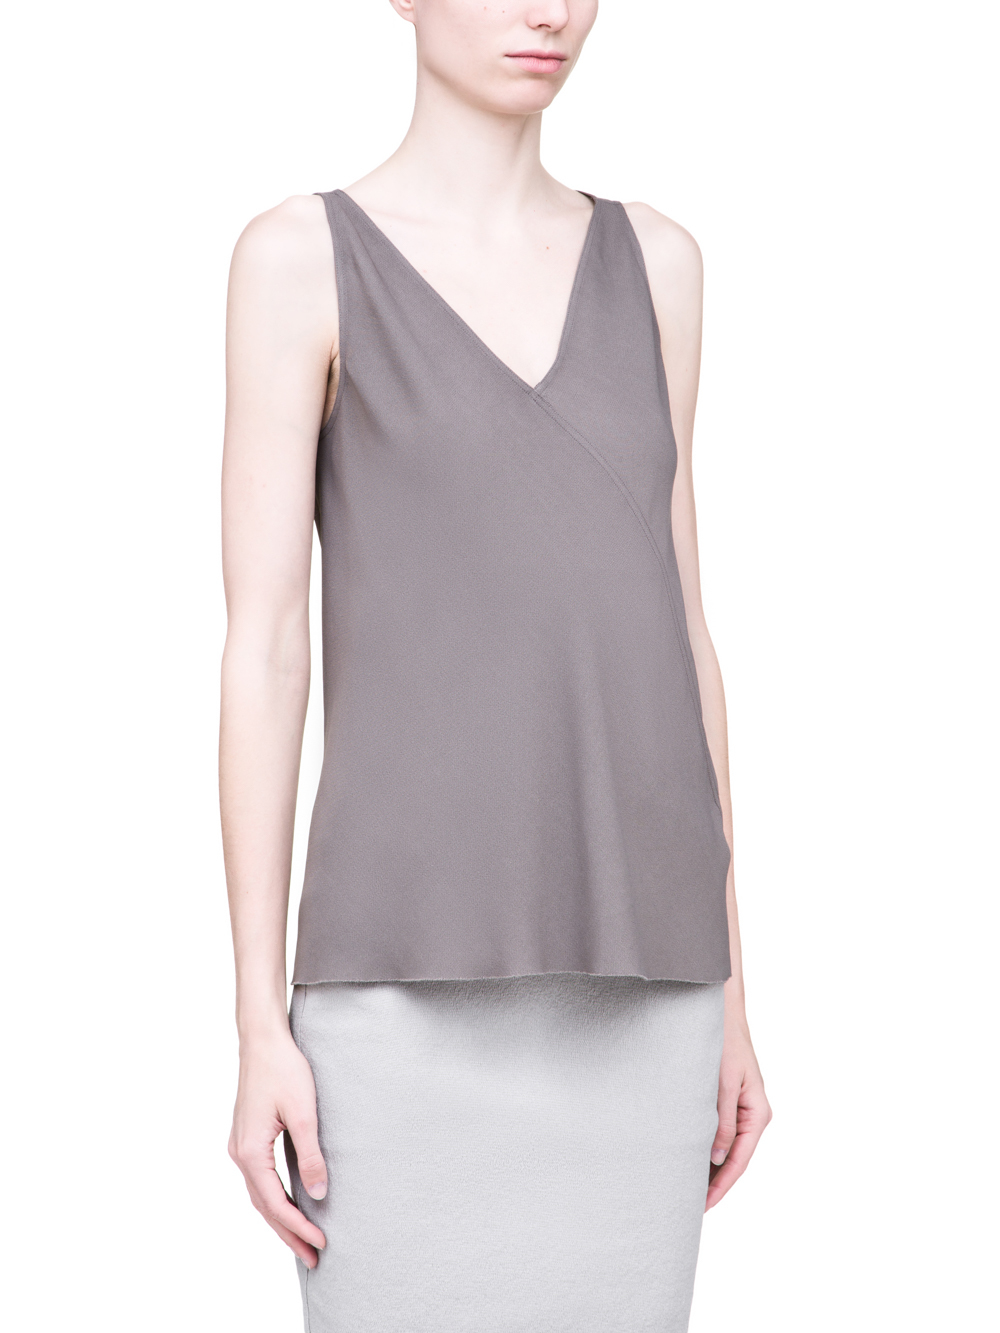 RICK OWENS SS19 BABEL KINGA TOP IN DUST GREY CADY